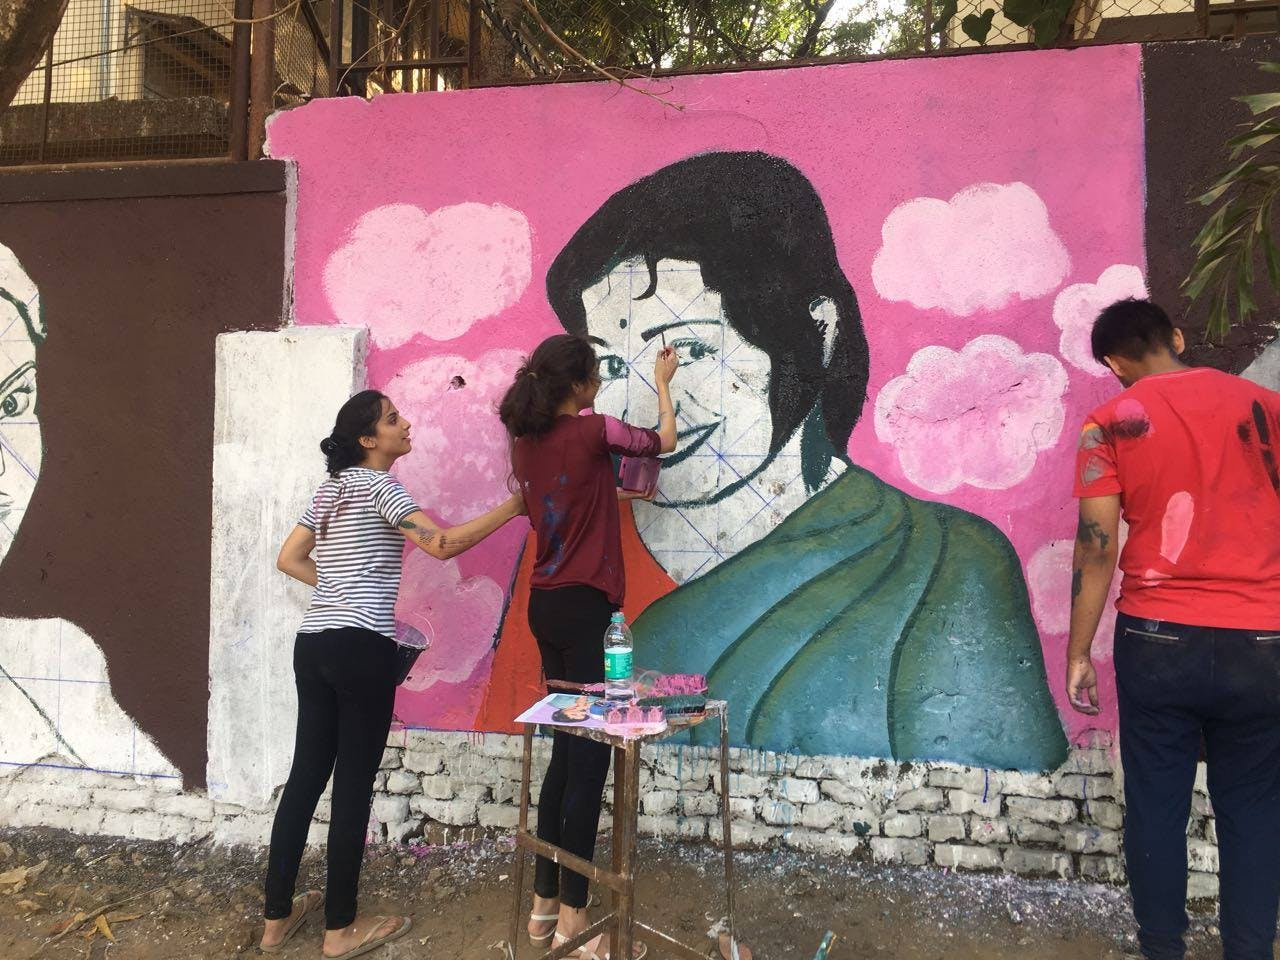 LBB Users, Get A Discount Of 15% In This Painting Workshop By Bollywood Art Project on Dec 29